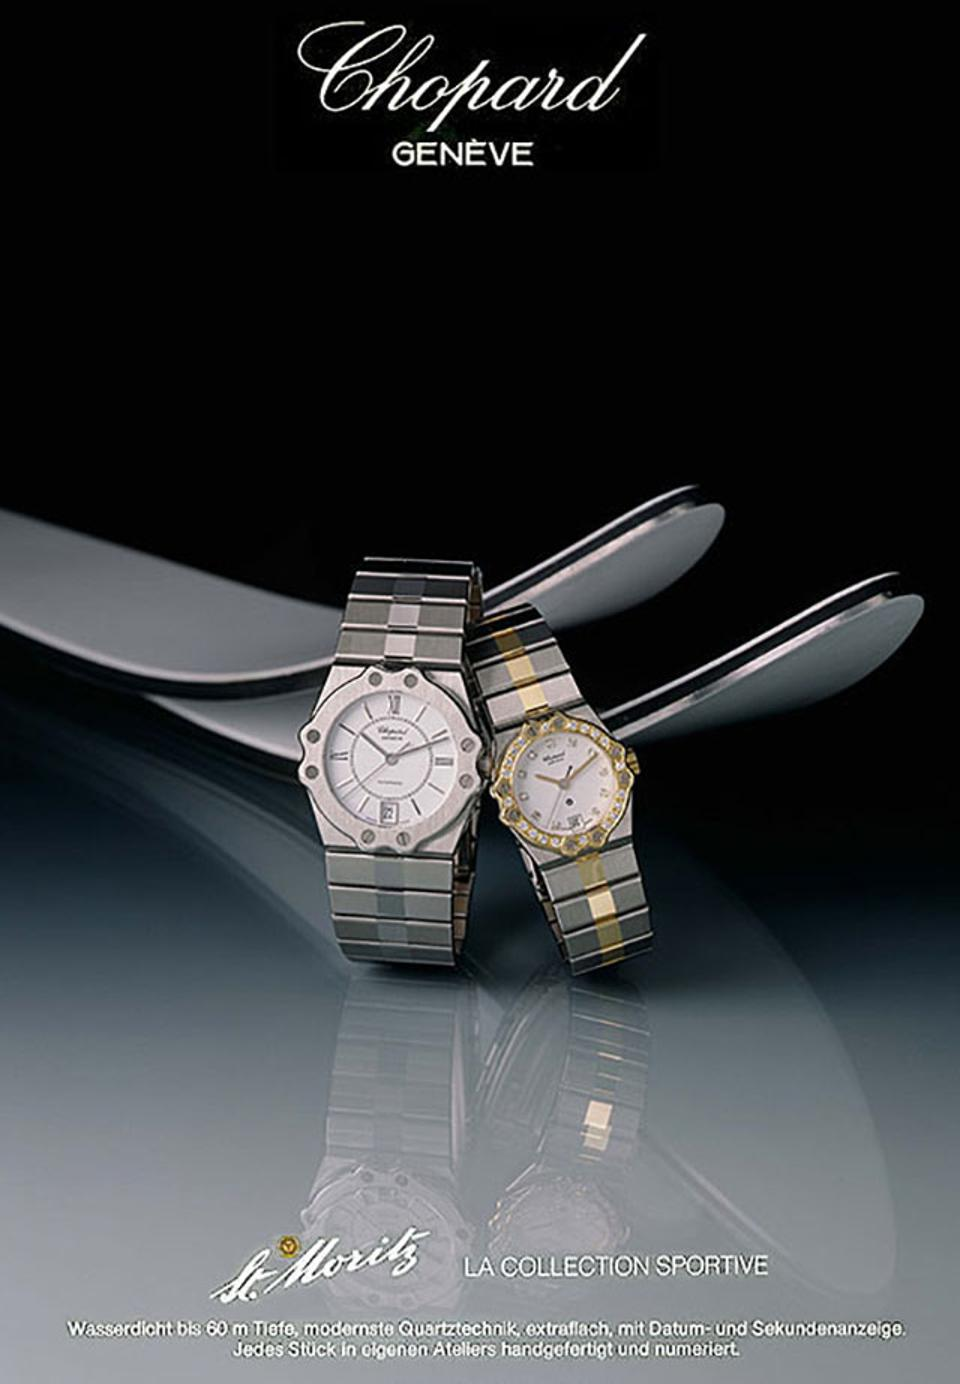 The original Chopard St. Moritz, first introduced in 1980. It is the inspiration behind the Alpine Eagle.